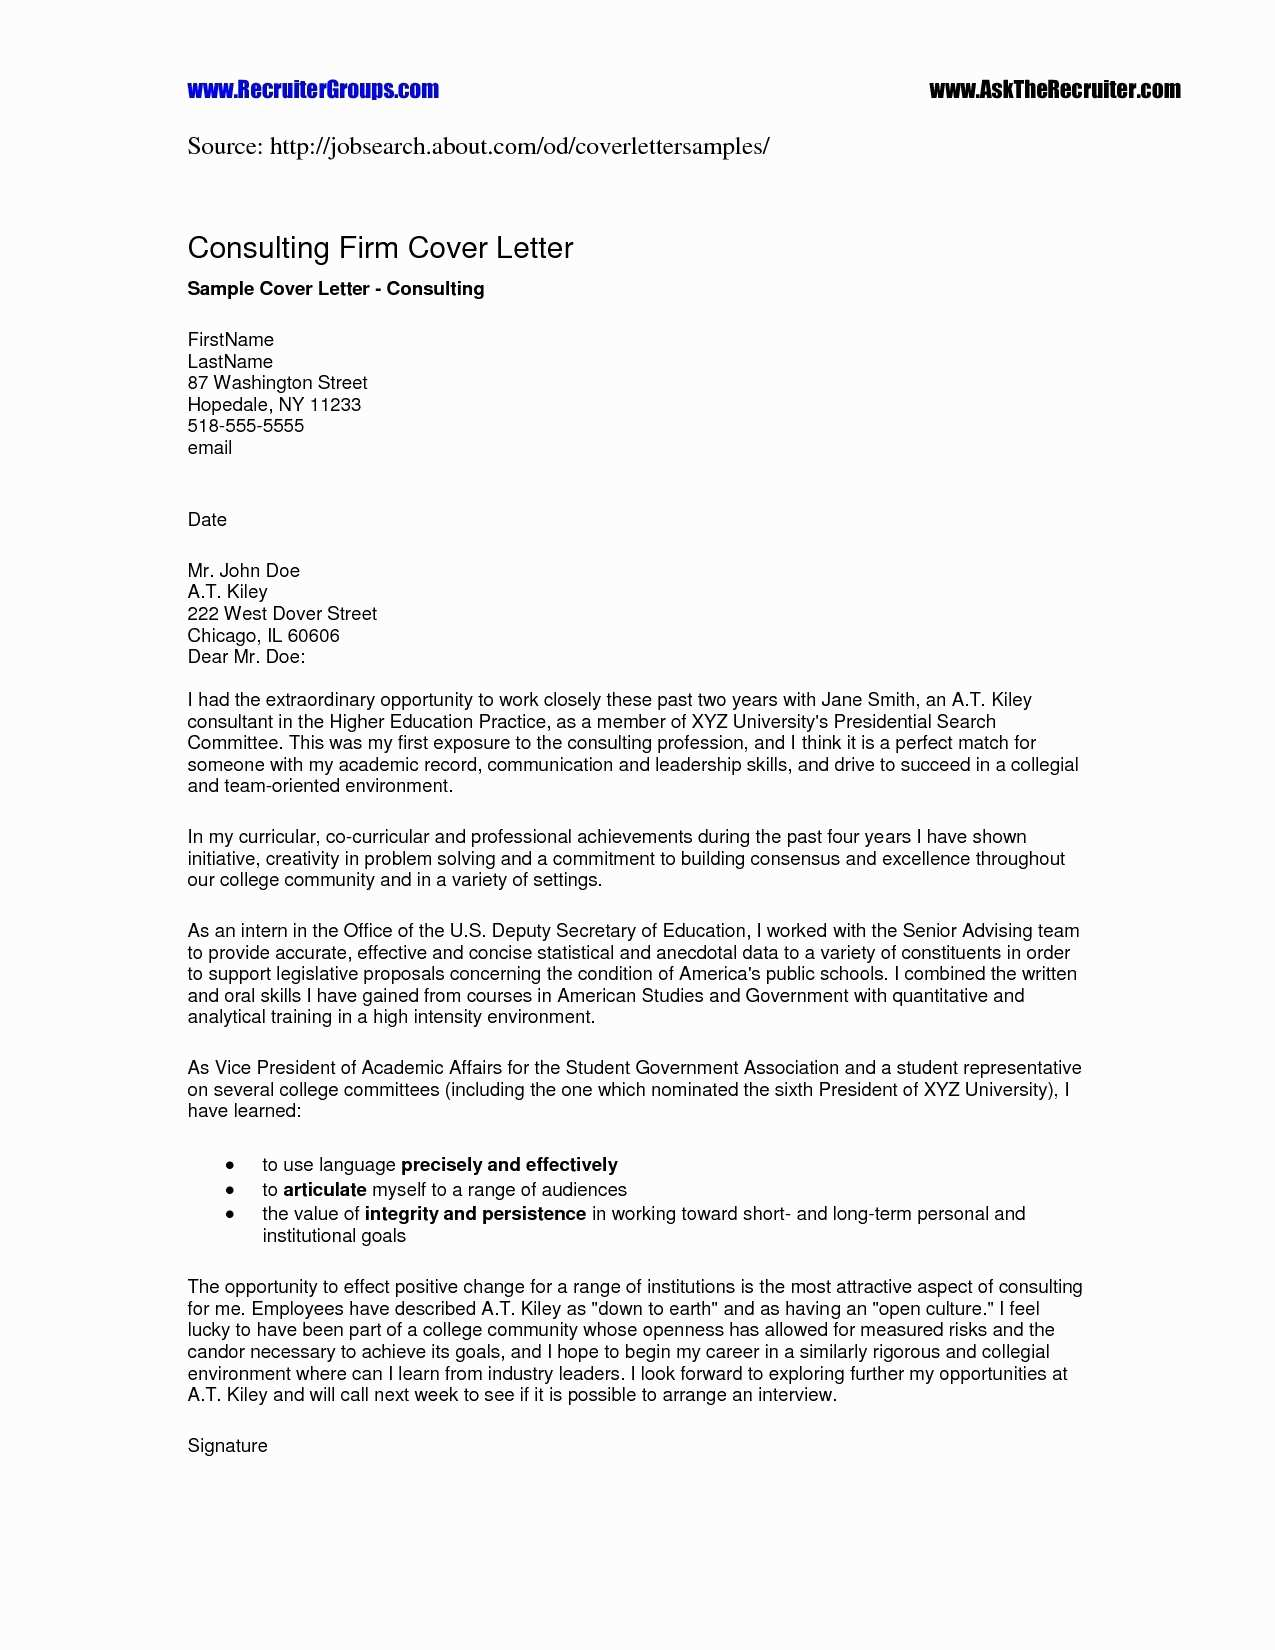 Contract Letter Template - Teaming Agreement Sample Inspirational Letter Template for Loan